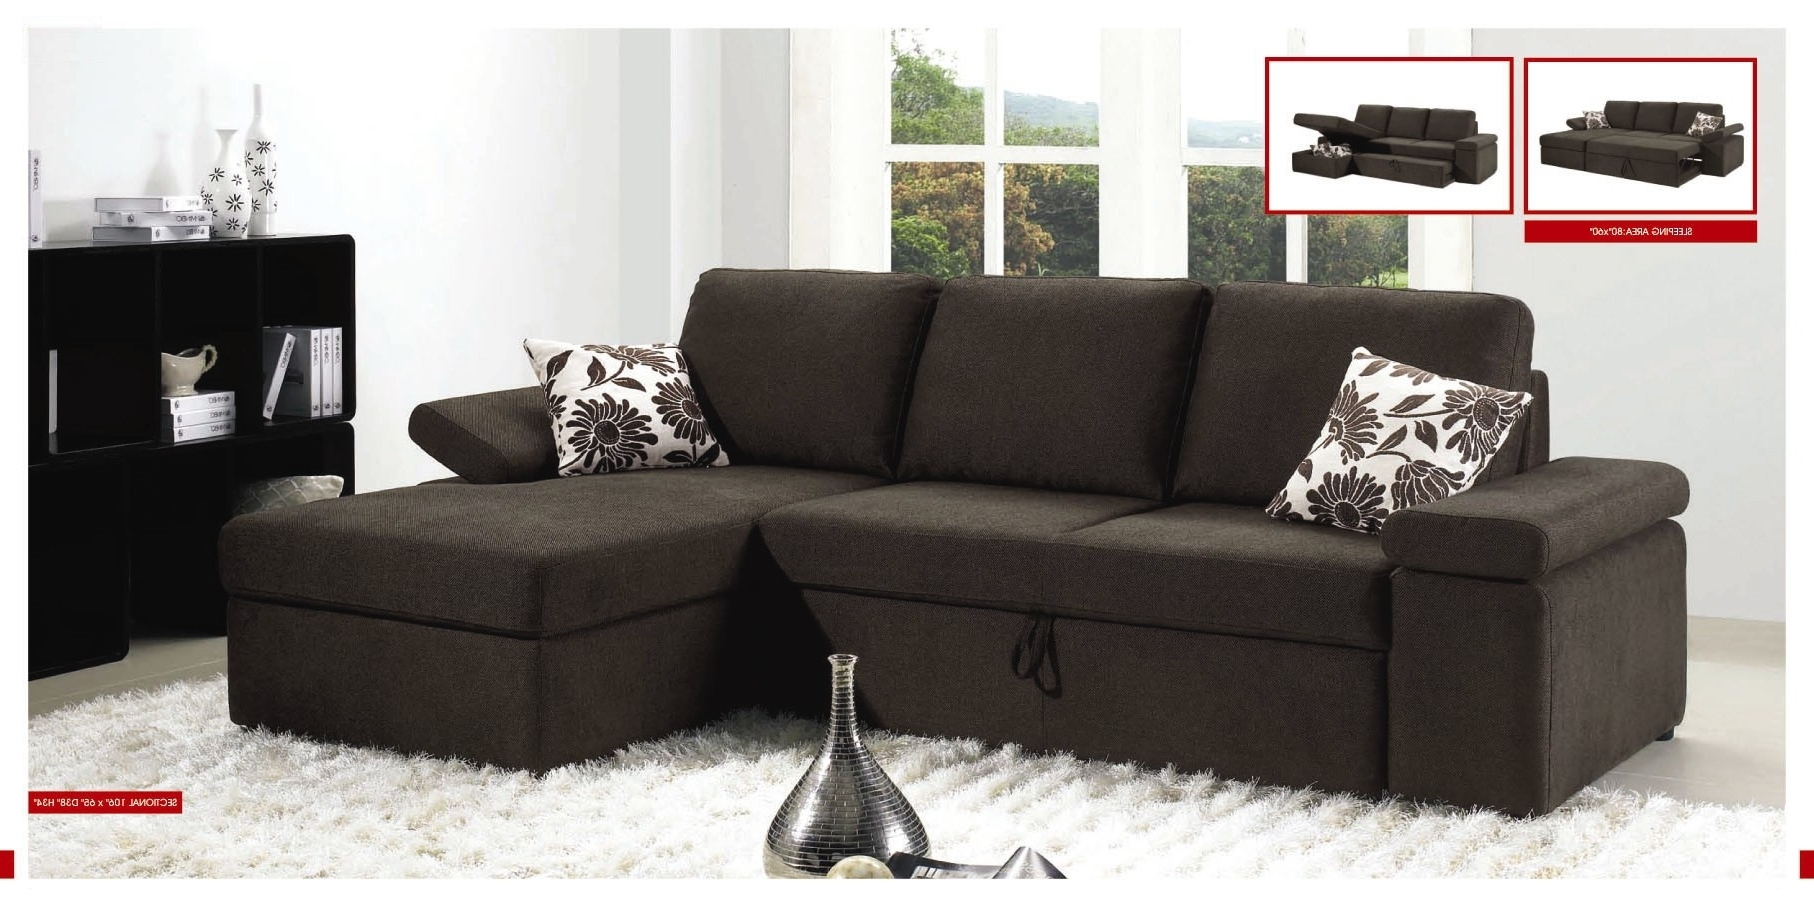 Fashionable Awesome Fancy Small Sectional Sleeper Sofa 20 With Additional Home With Regard To Canada Sectional Sofas For Small Spaces (View 9 of 20)